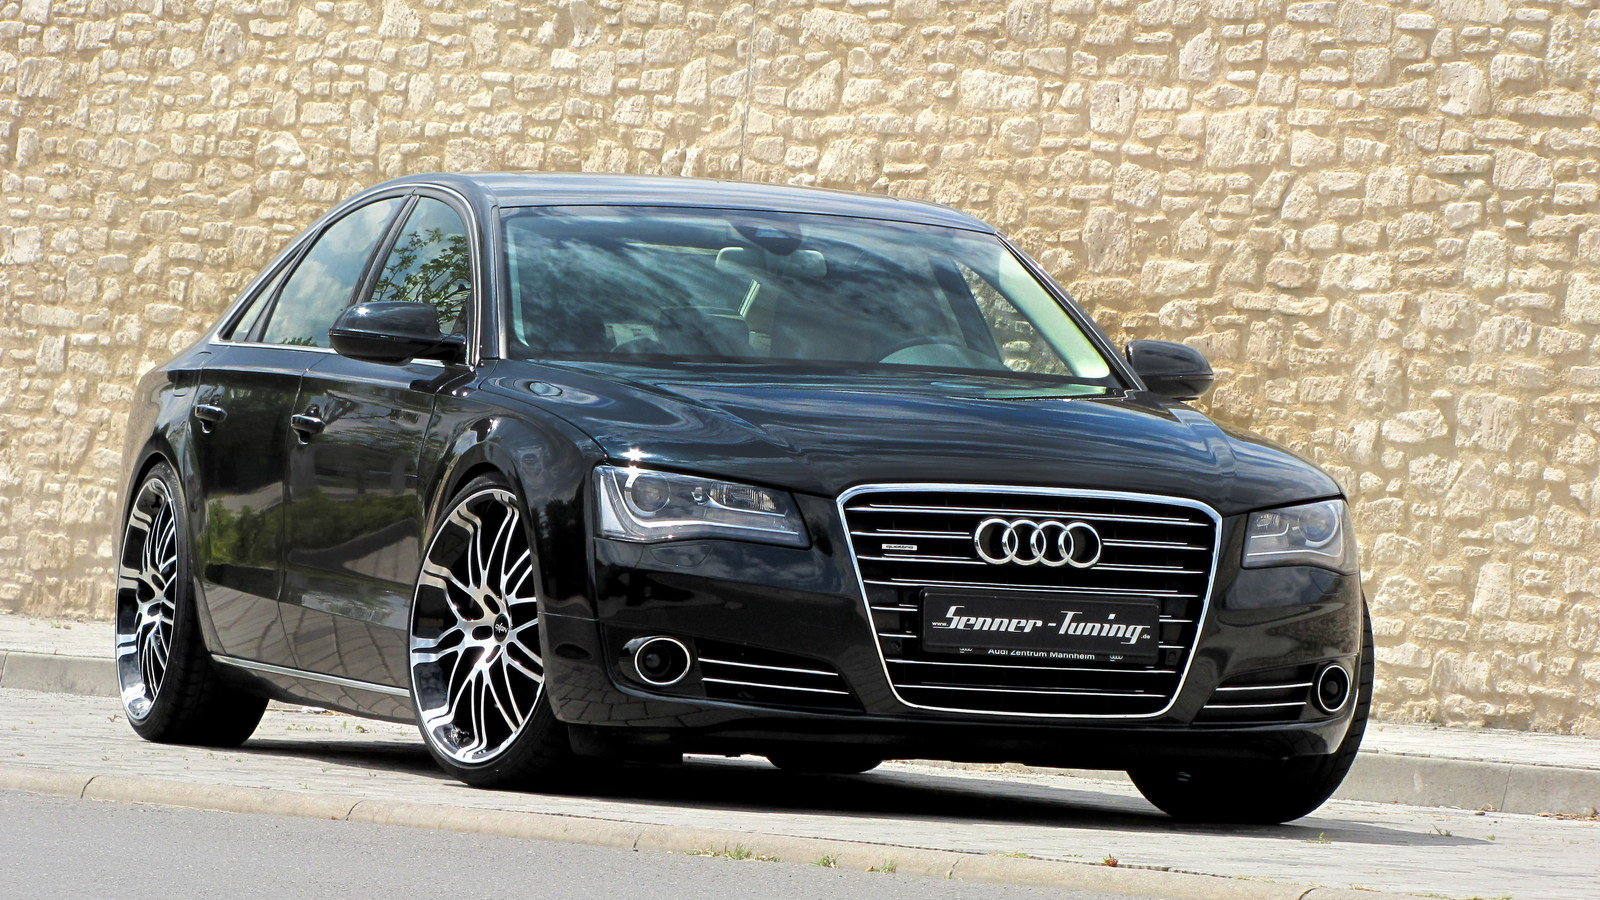 2014 audi a8 by senner tuning review top speed. Black Bedroom Furniture Sets. Home Design Ideas